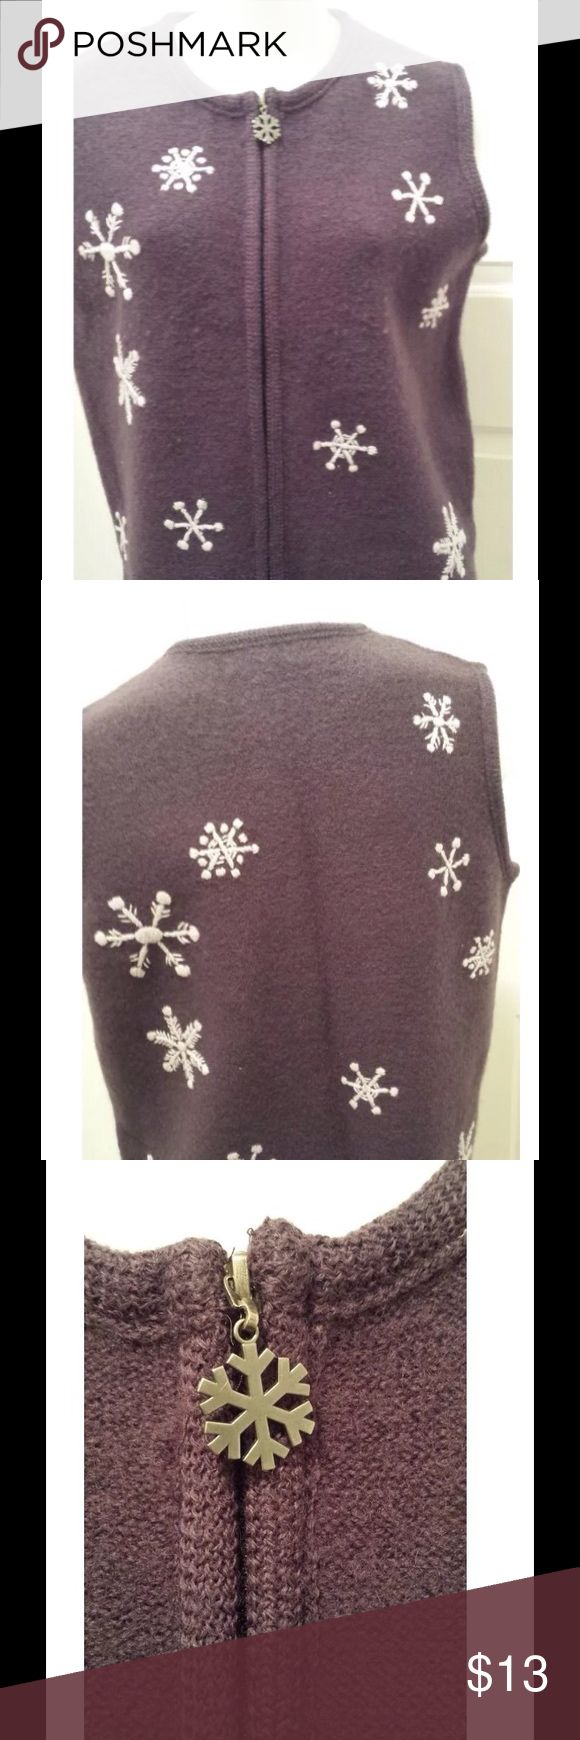 Cabela's Purple Wool Snowflake Zip Up Sweater Vest Cabela's Purple Wool Snowflake Zip Up Sweater Vest. Women's Size Reg. M. There is some pilling on the front of the sweater. Cabela's Sweaters